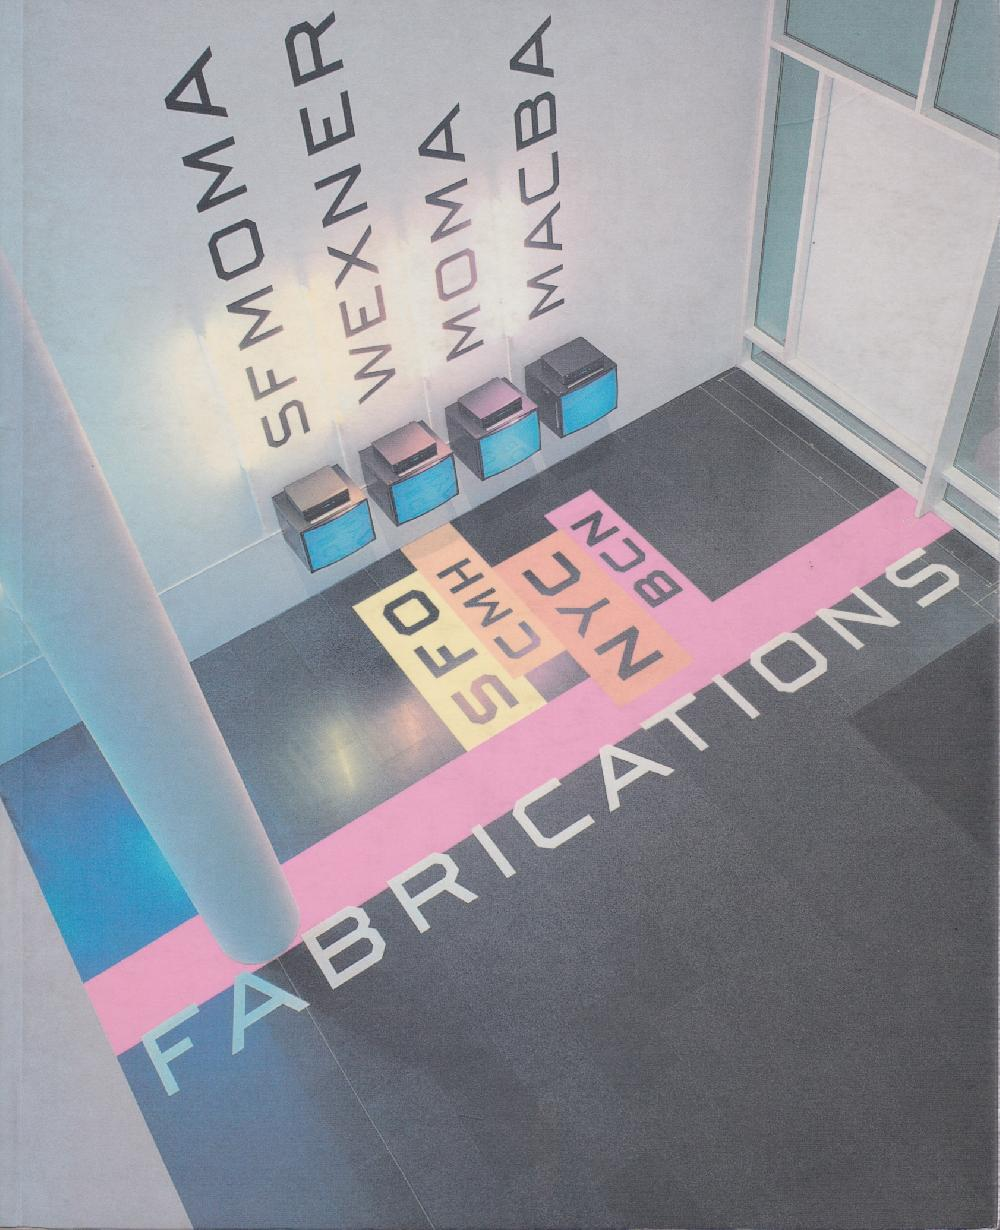 Fabrications / Fabricaciones